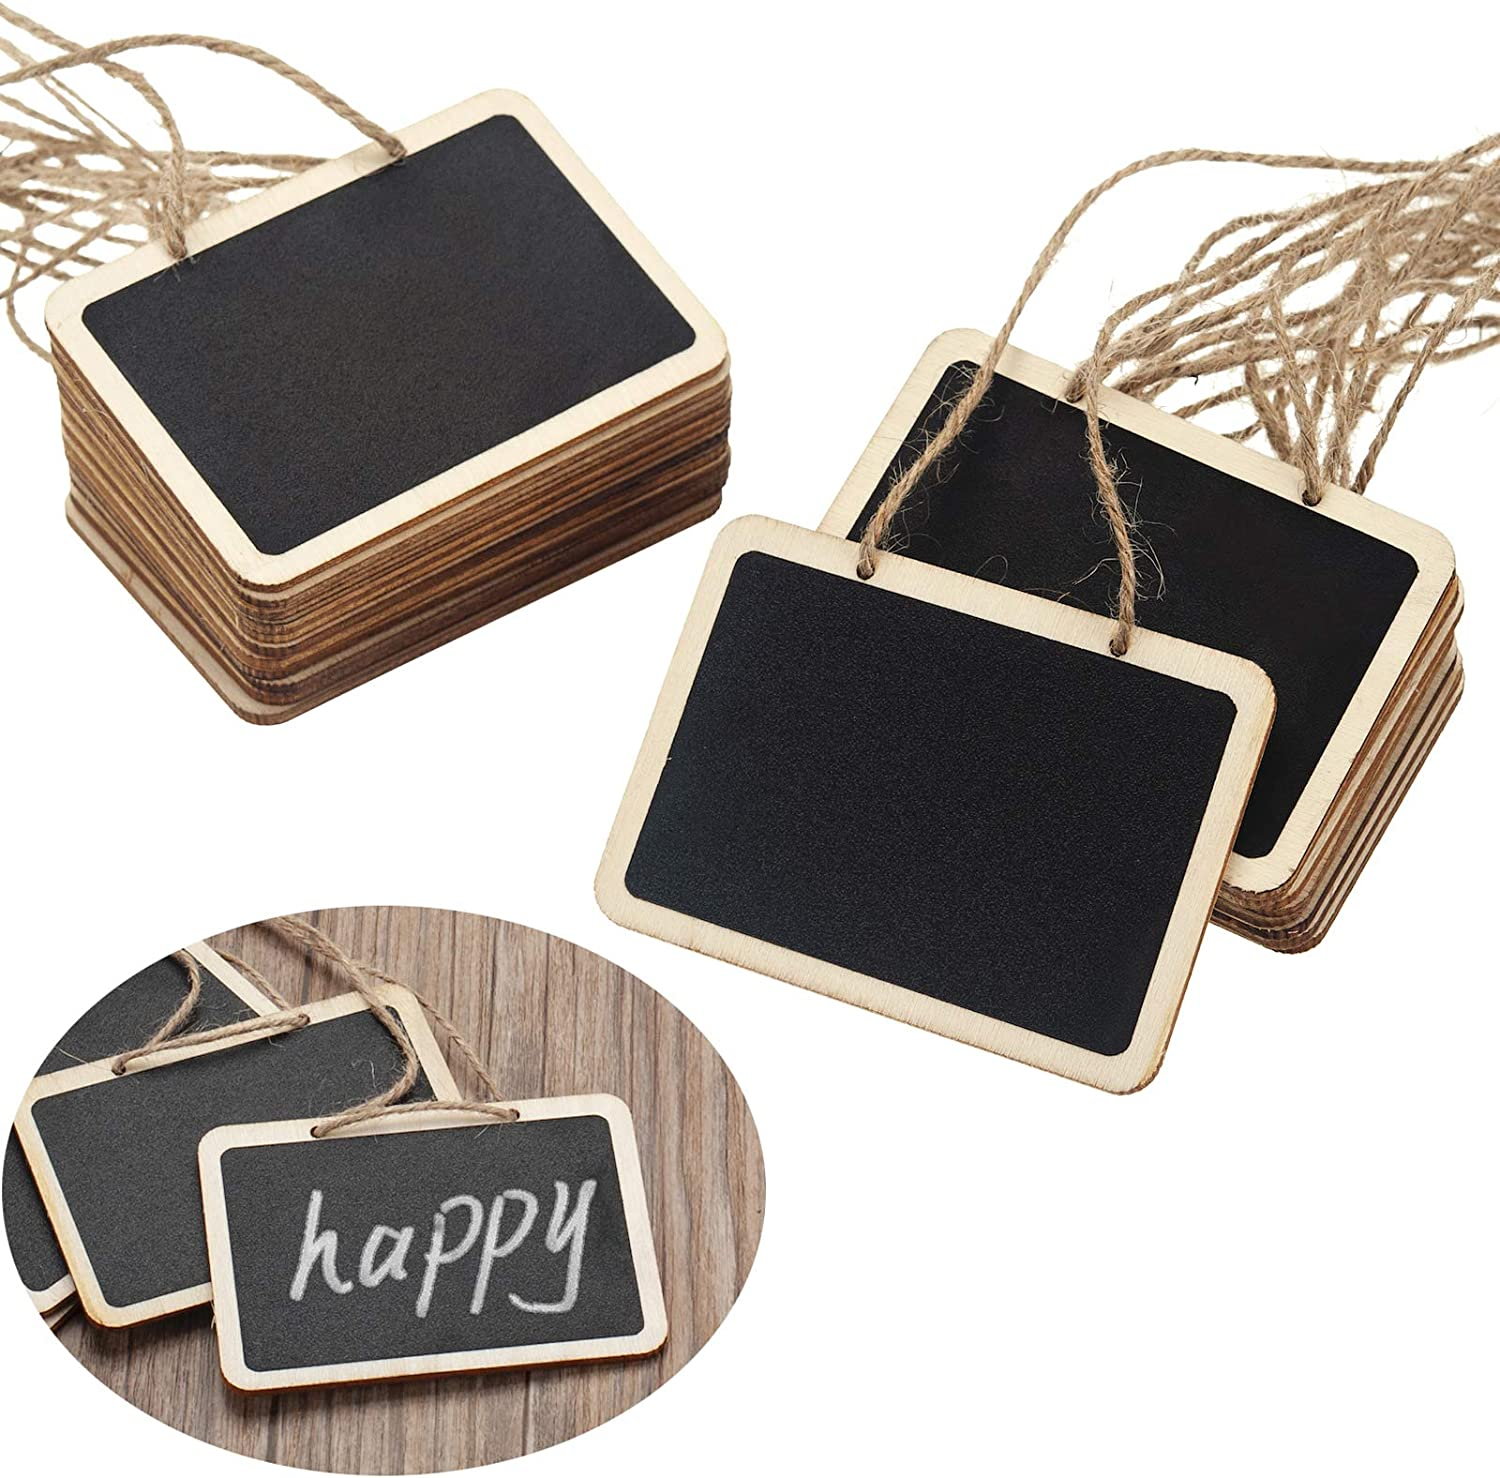 20 Pack Mini Chalkboard Tags for Basket, Erasable Chalkboards with Hanging String Rectangle Chalkboards for Message Tags, Food Tags, Wedding Hanging Labels